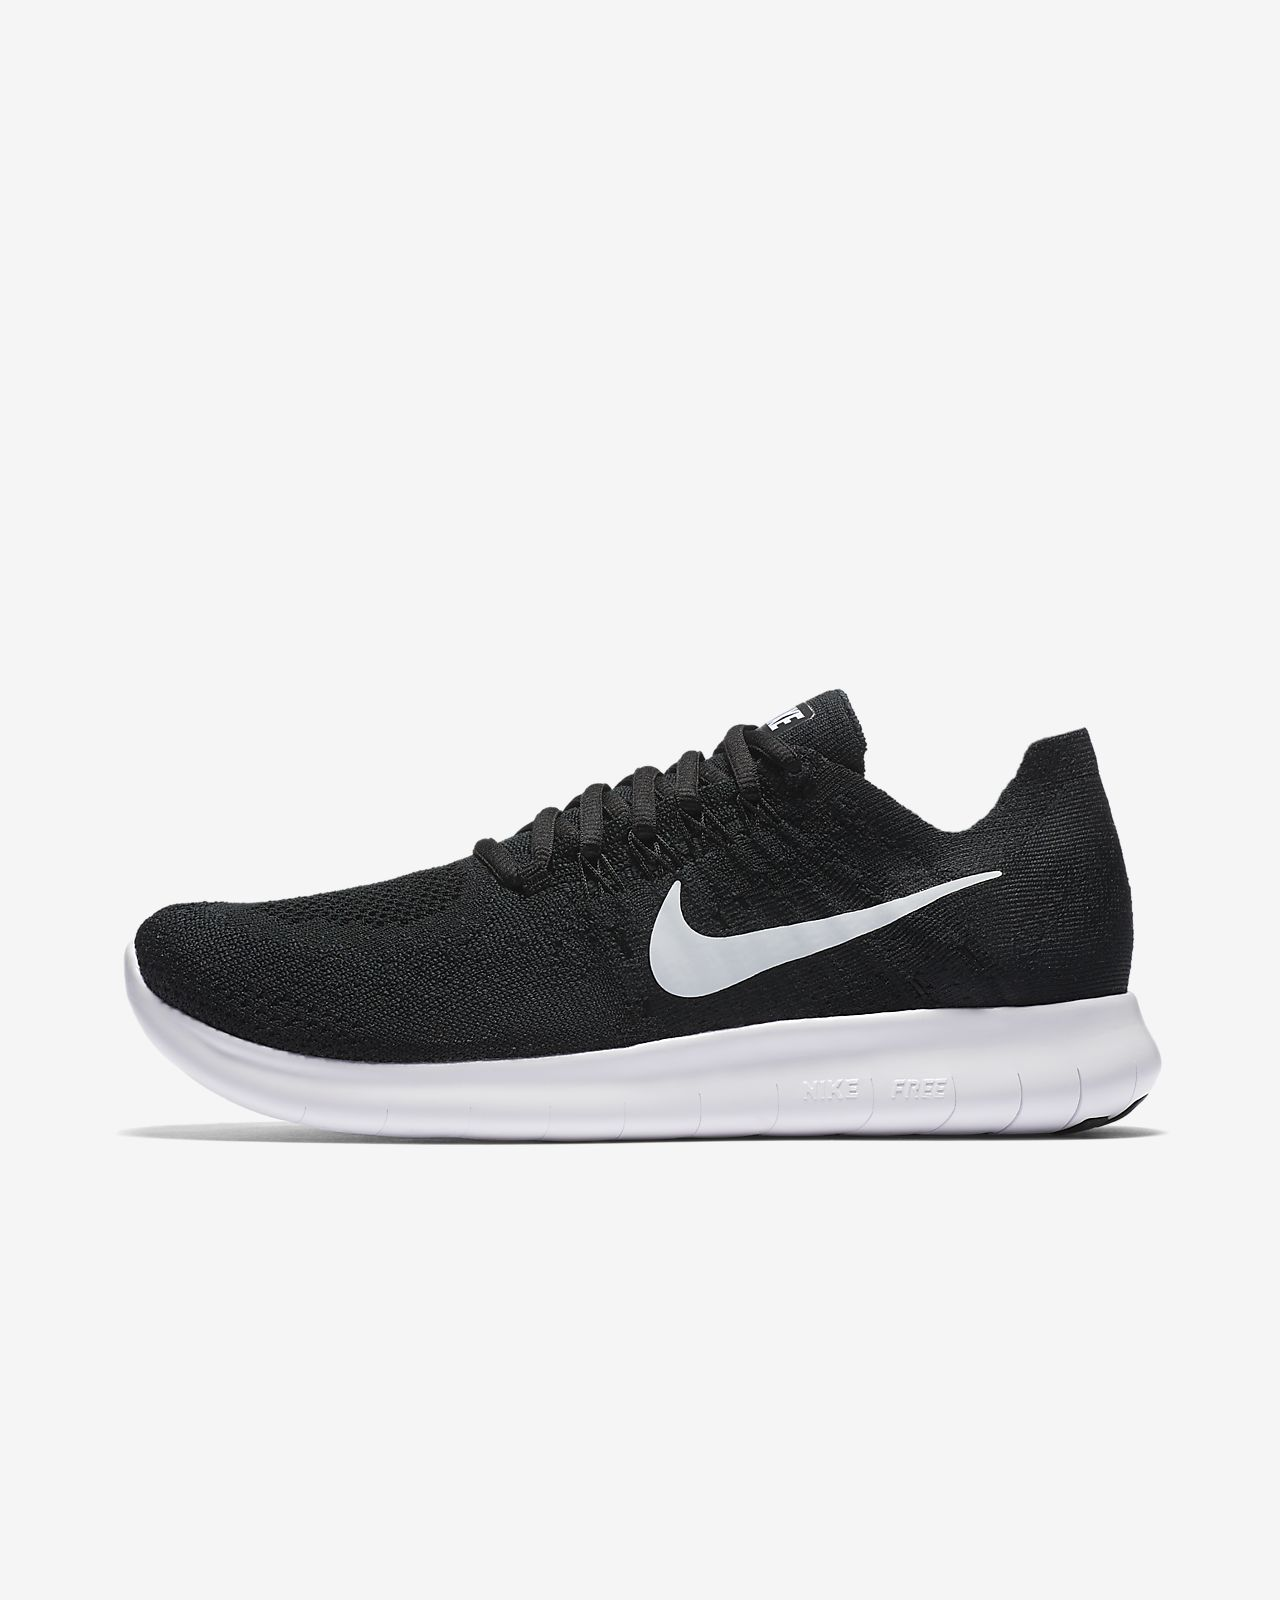 9d84b5ddfd518 ... atmosphere grey dark stucco iron purple provence purple womens running  shoe 760f2 65ffd  closeout nike free rn flyknit 2017 womens running shoe  258ce ...